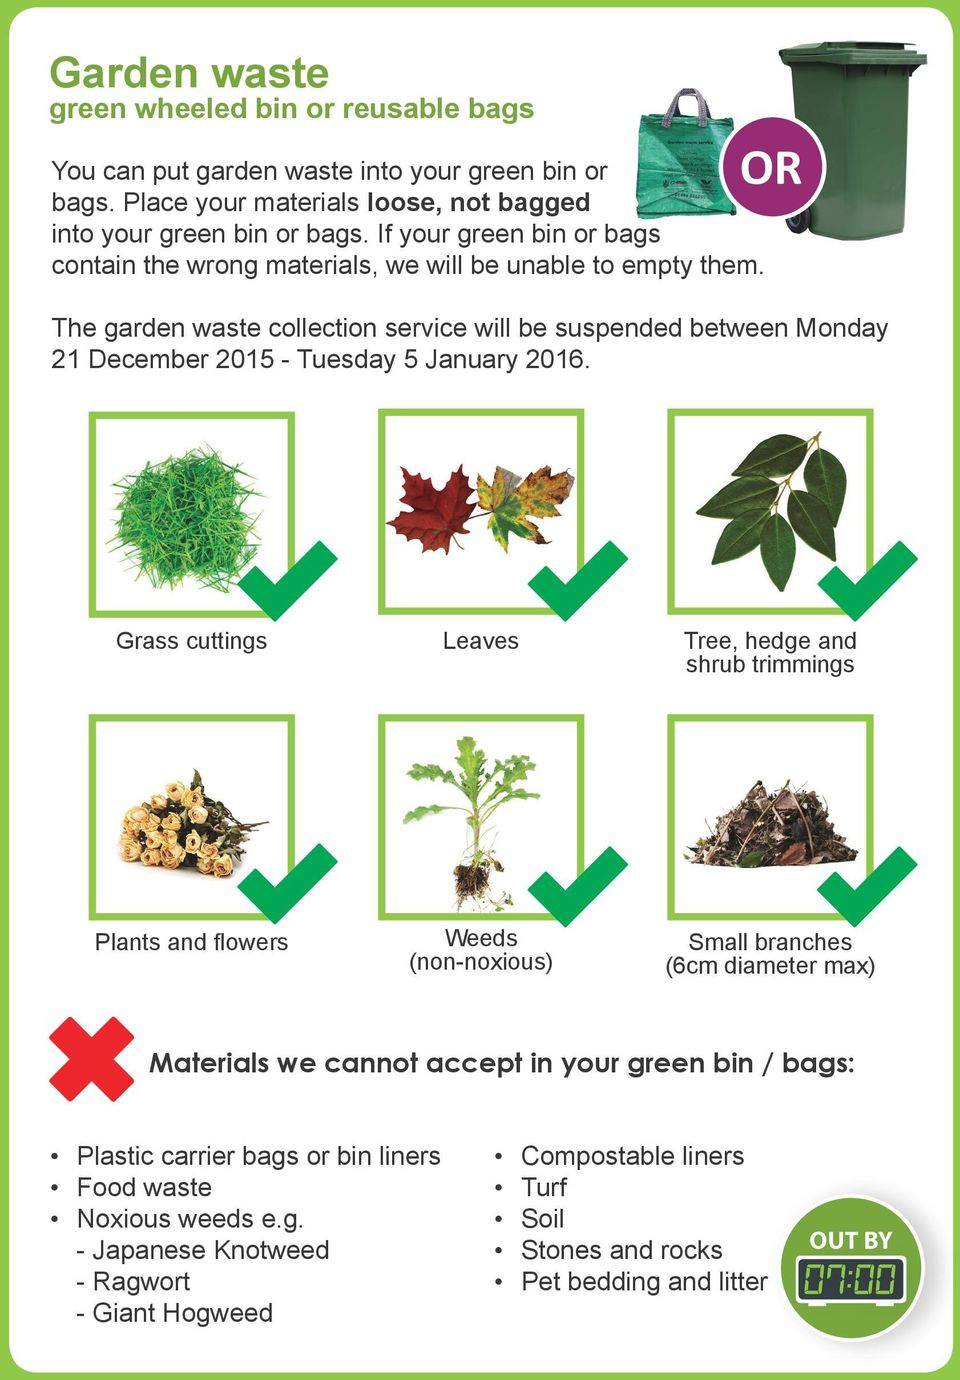 The garden waste collection service will be suspended between Monday 21 December 2015 - Tuesday 5 January 2016.